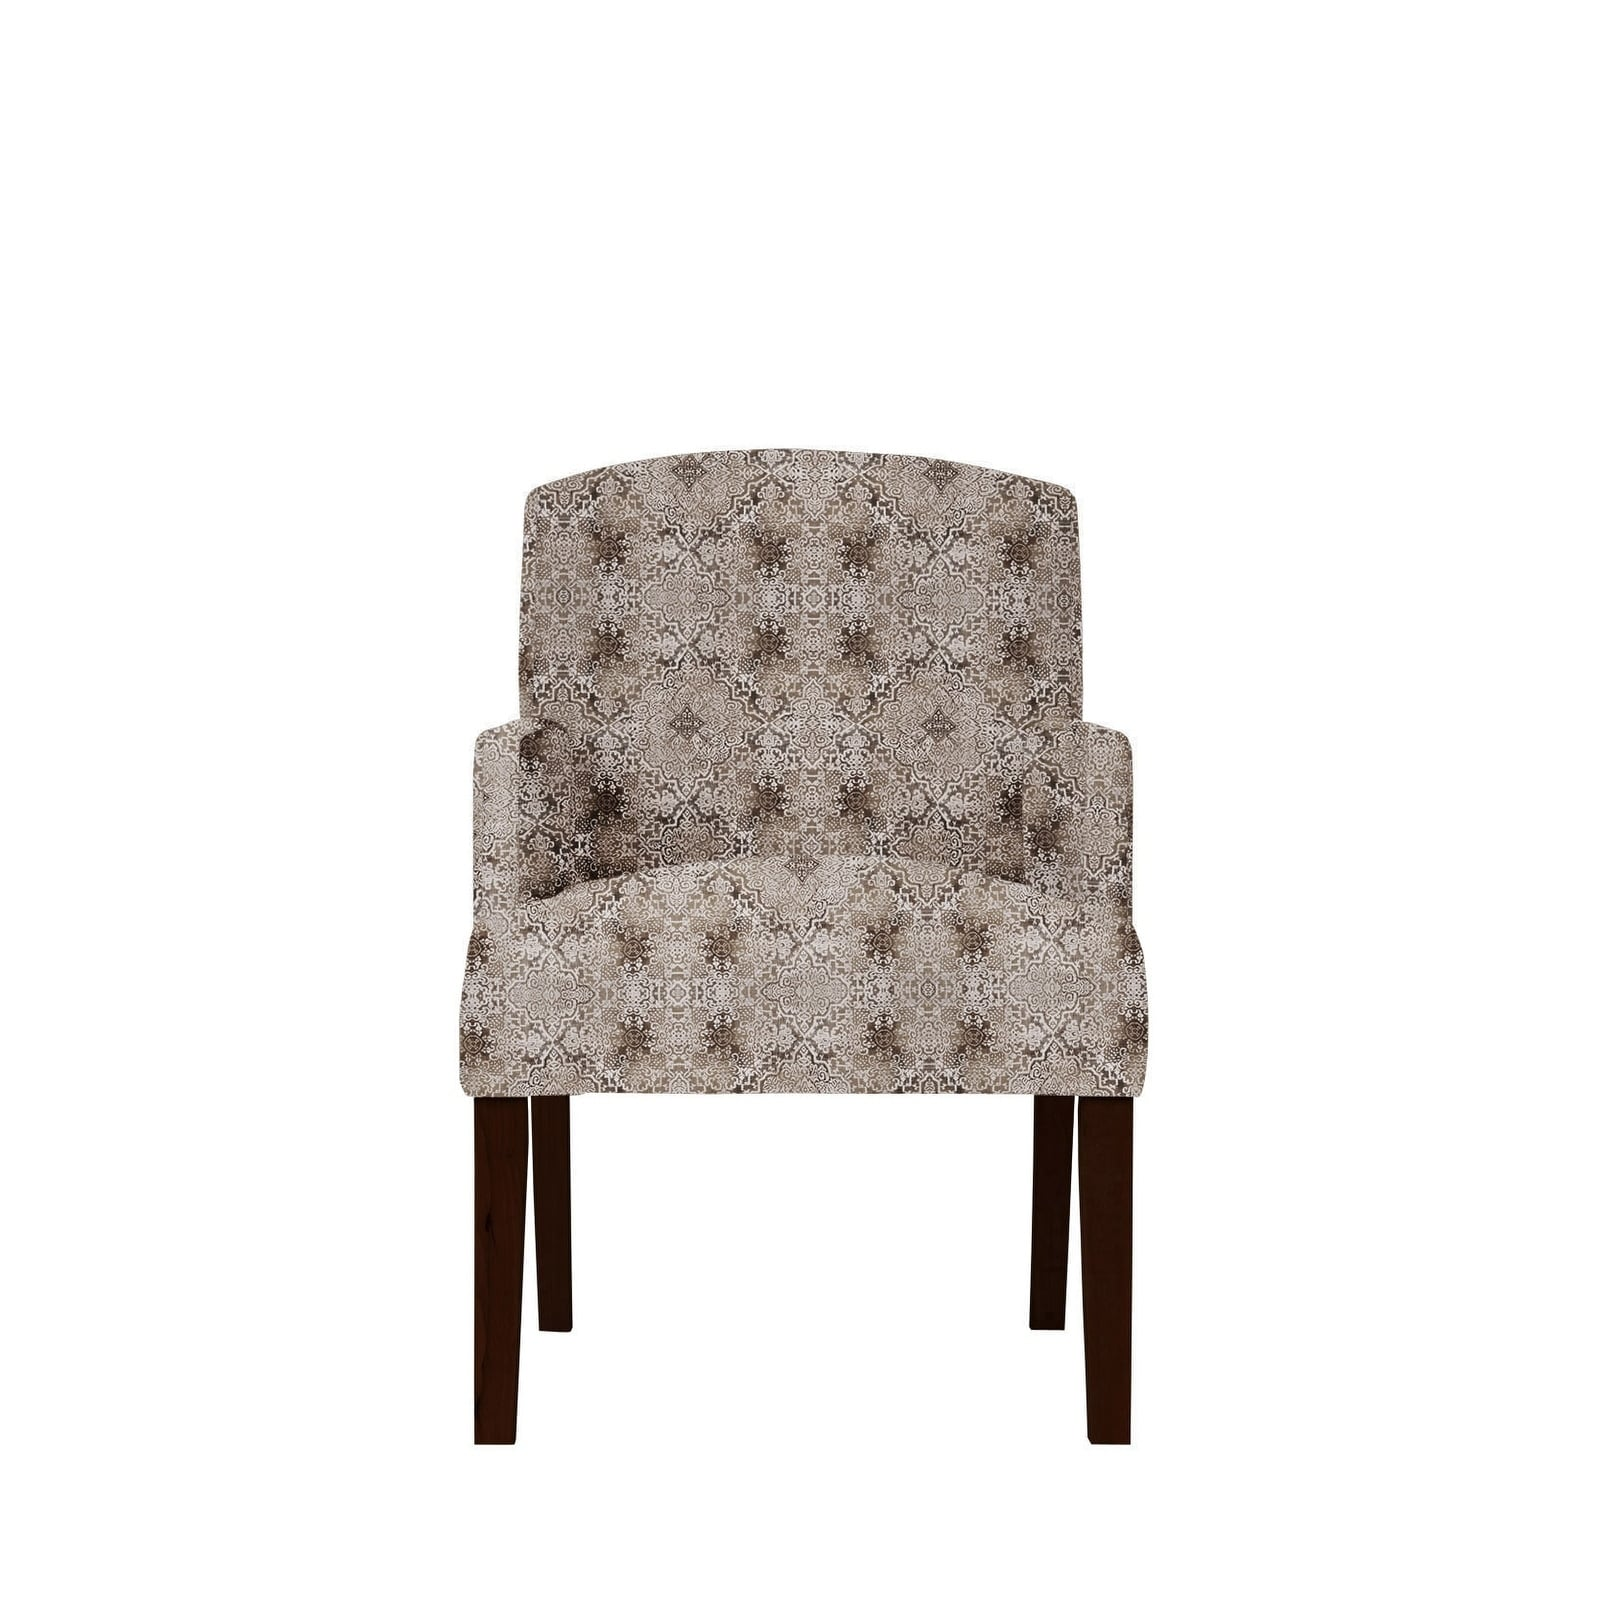 Samantha Arm Chair with Moore Fabric 636, Brown/Grey/Tan/...